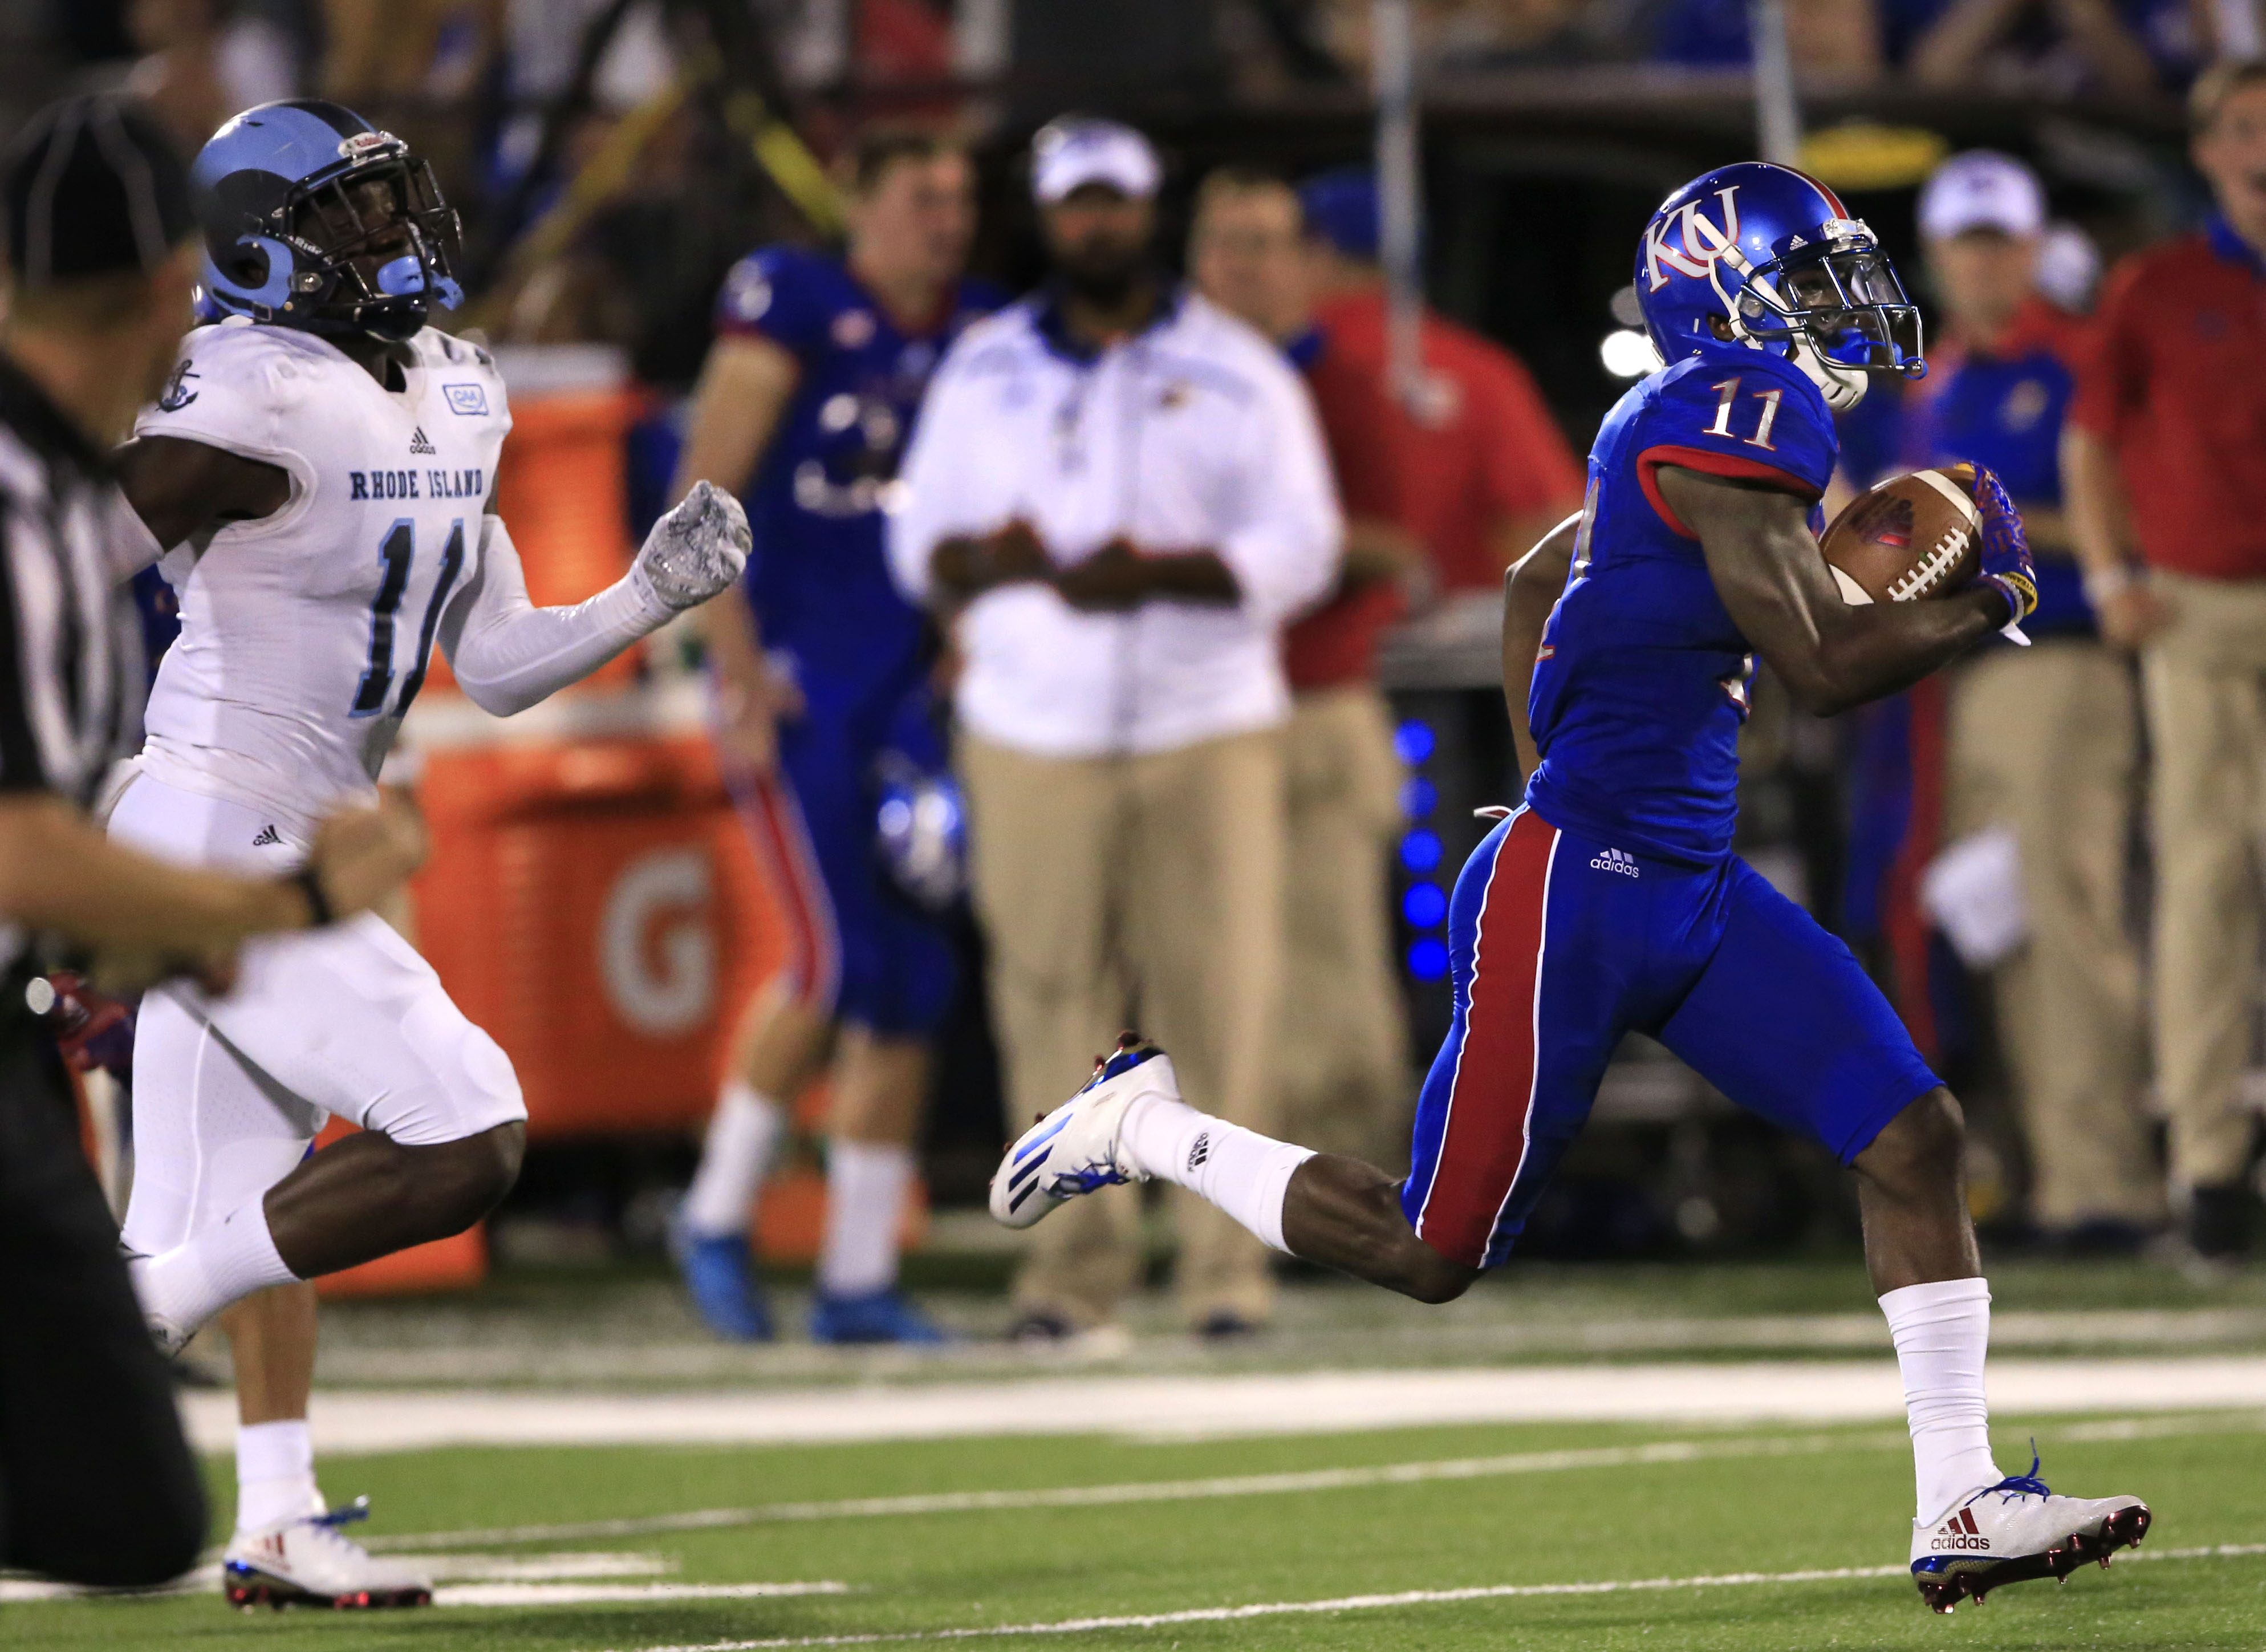 FILE - In this Sept. 3, 2016, file photo, Kansas wide receiver Steven Sims Jr. (11) runs for a touchdown past Rhode Island defensive back D.J. Stewart (11) during the second half of an NCAA college football game in Lawrence, Kan. Simes, a sophomore from H